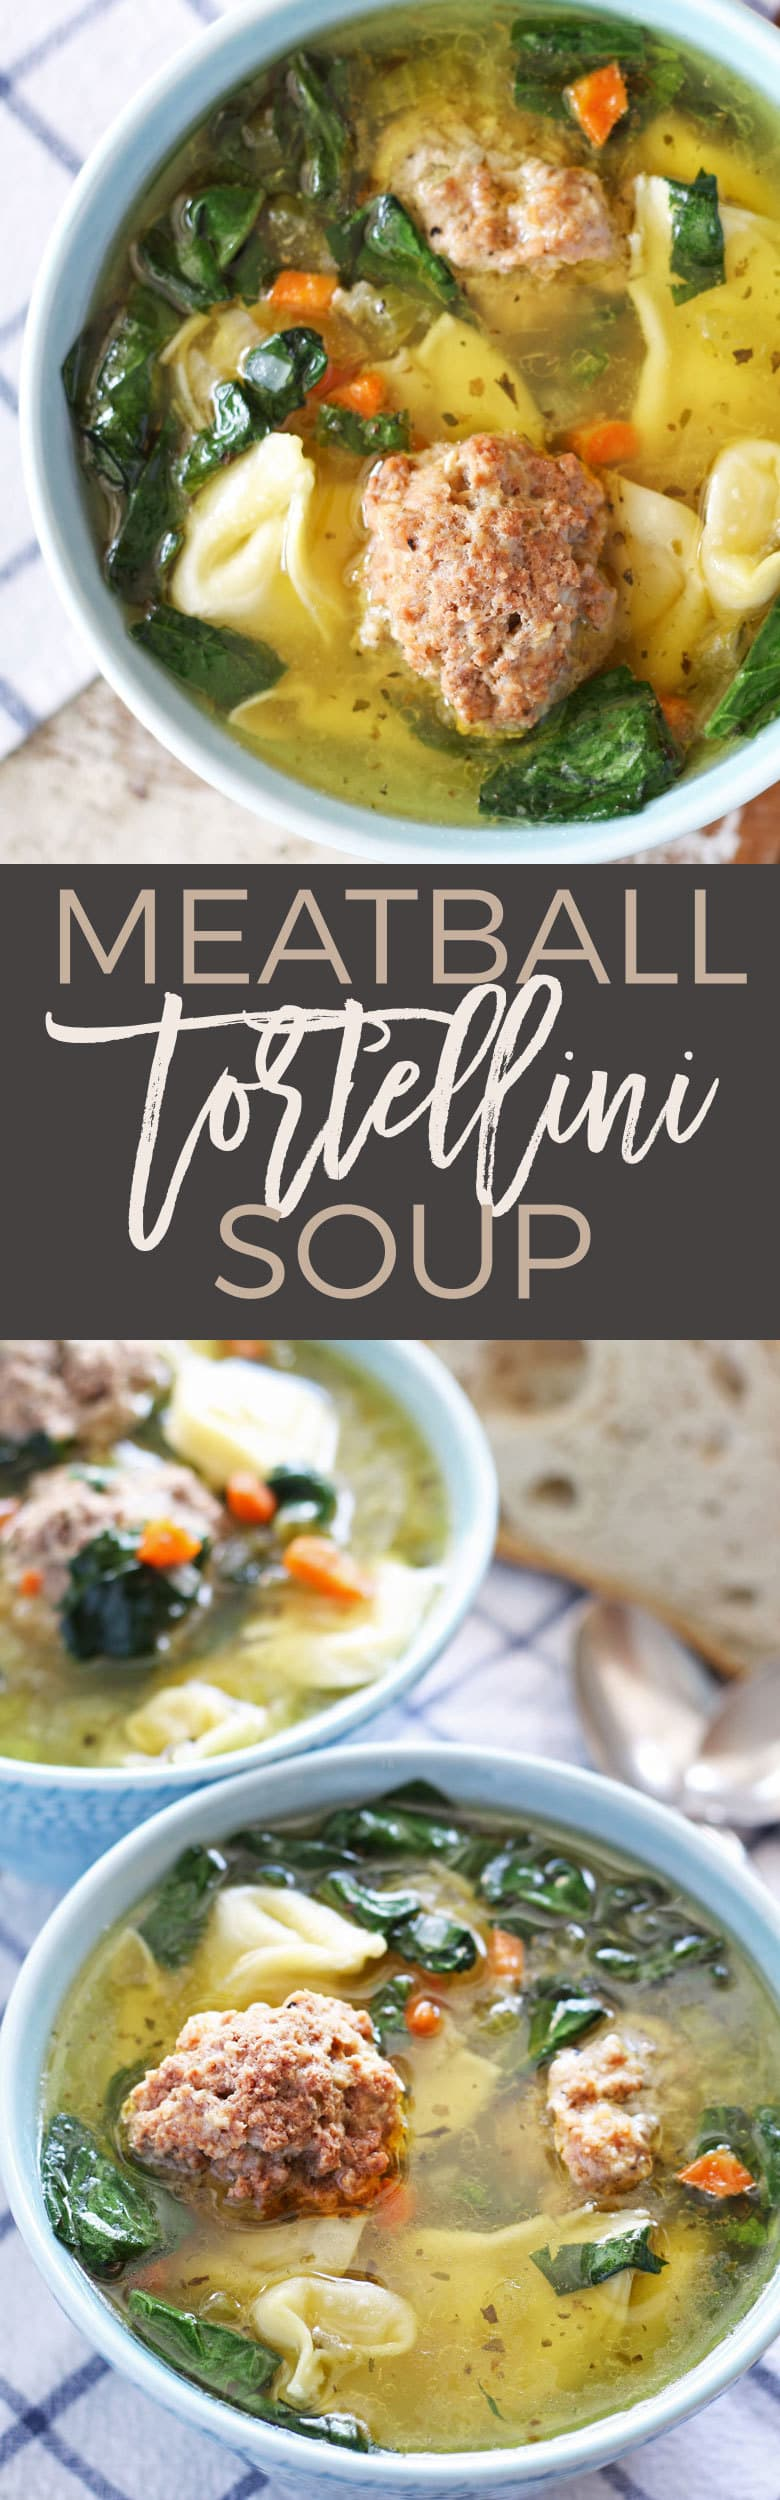 This easy meatball tortellini soup is hearty and perfect for lunch or dinner! Made with store-bought tortellini and giant meatballs! | honeyandbirch.com